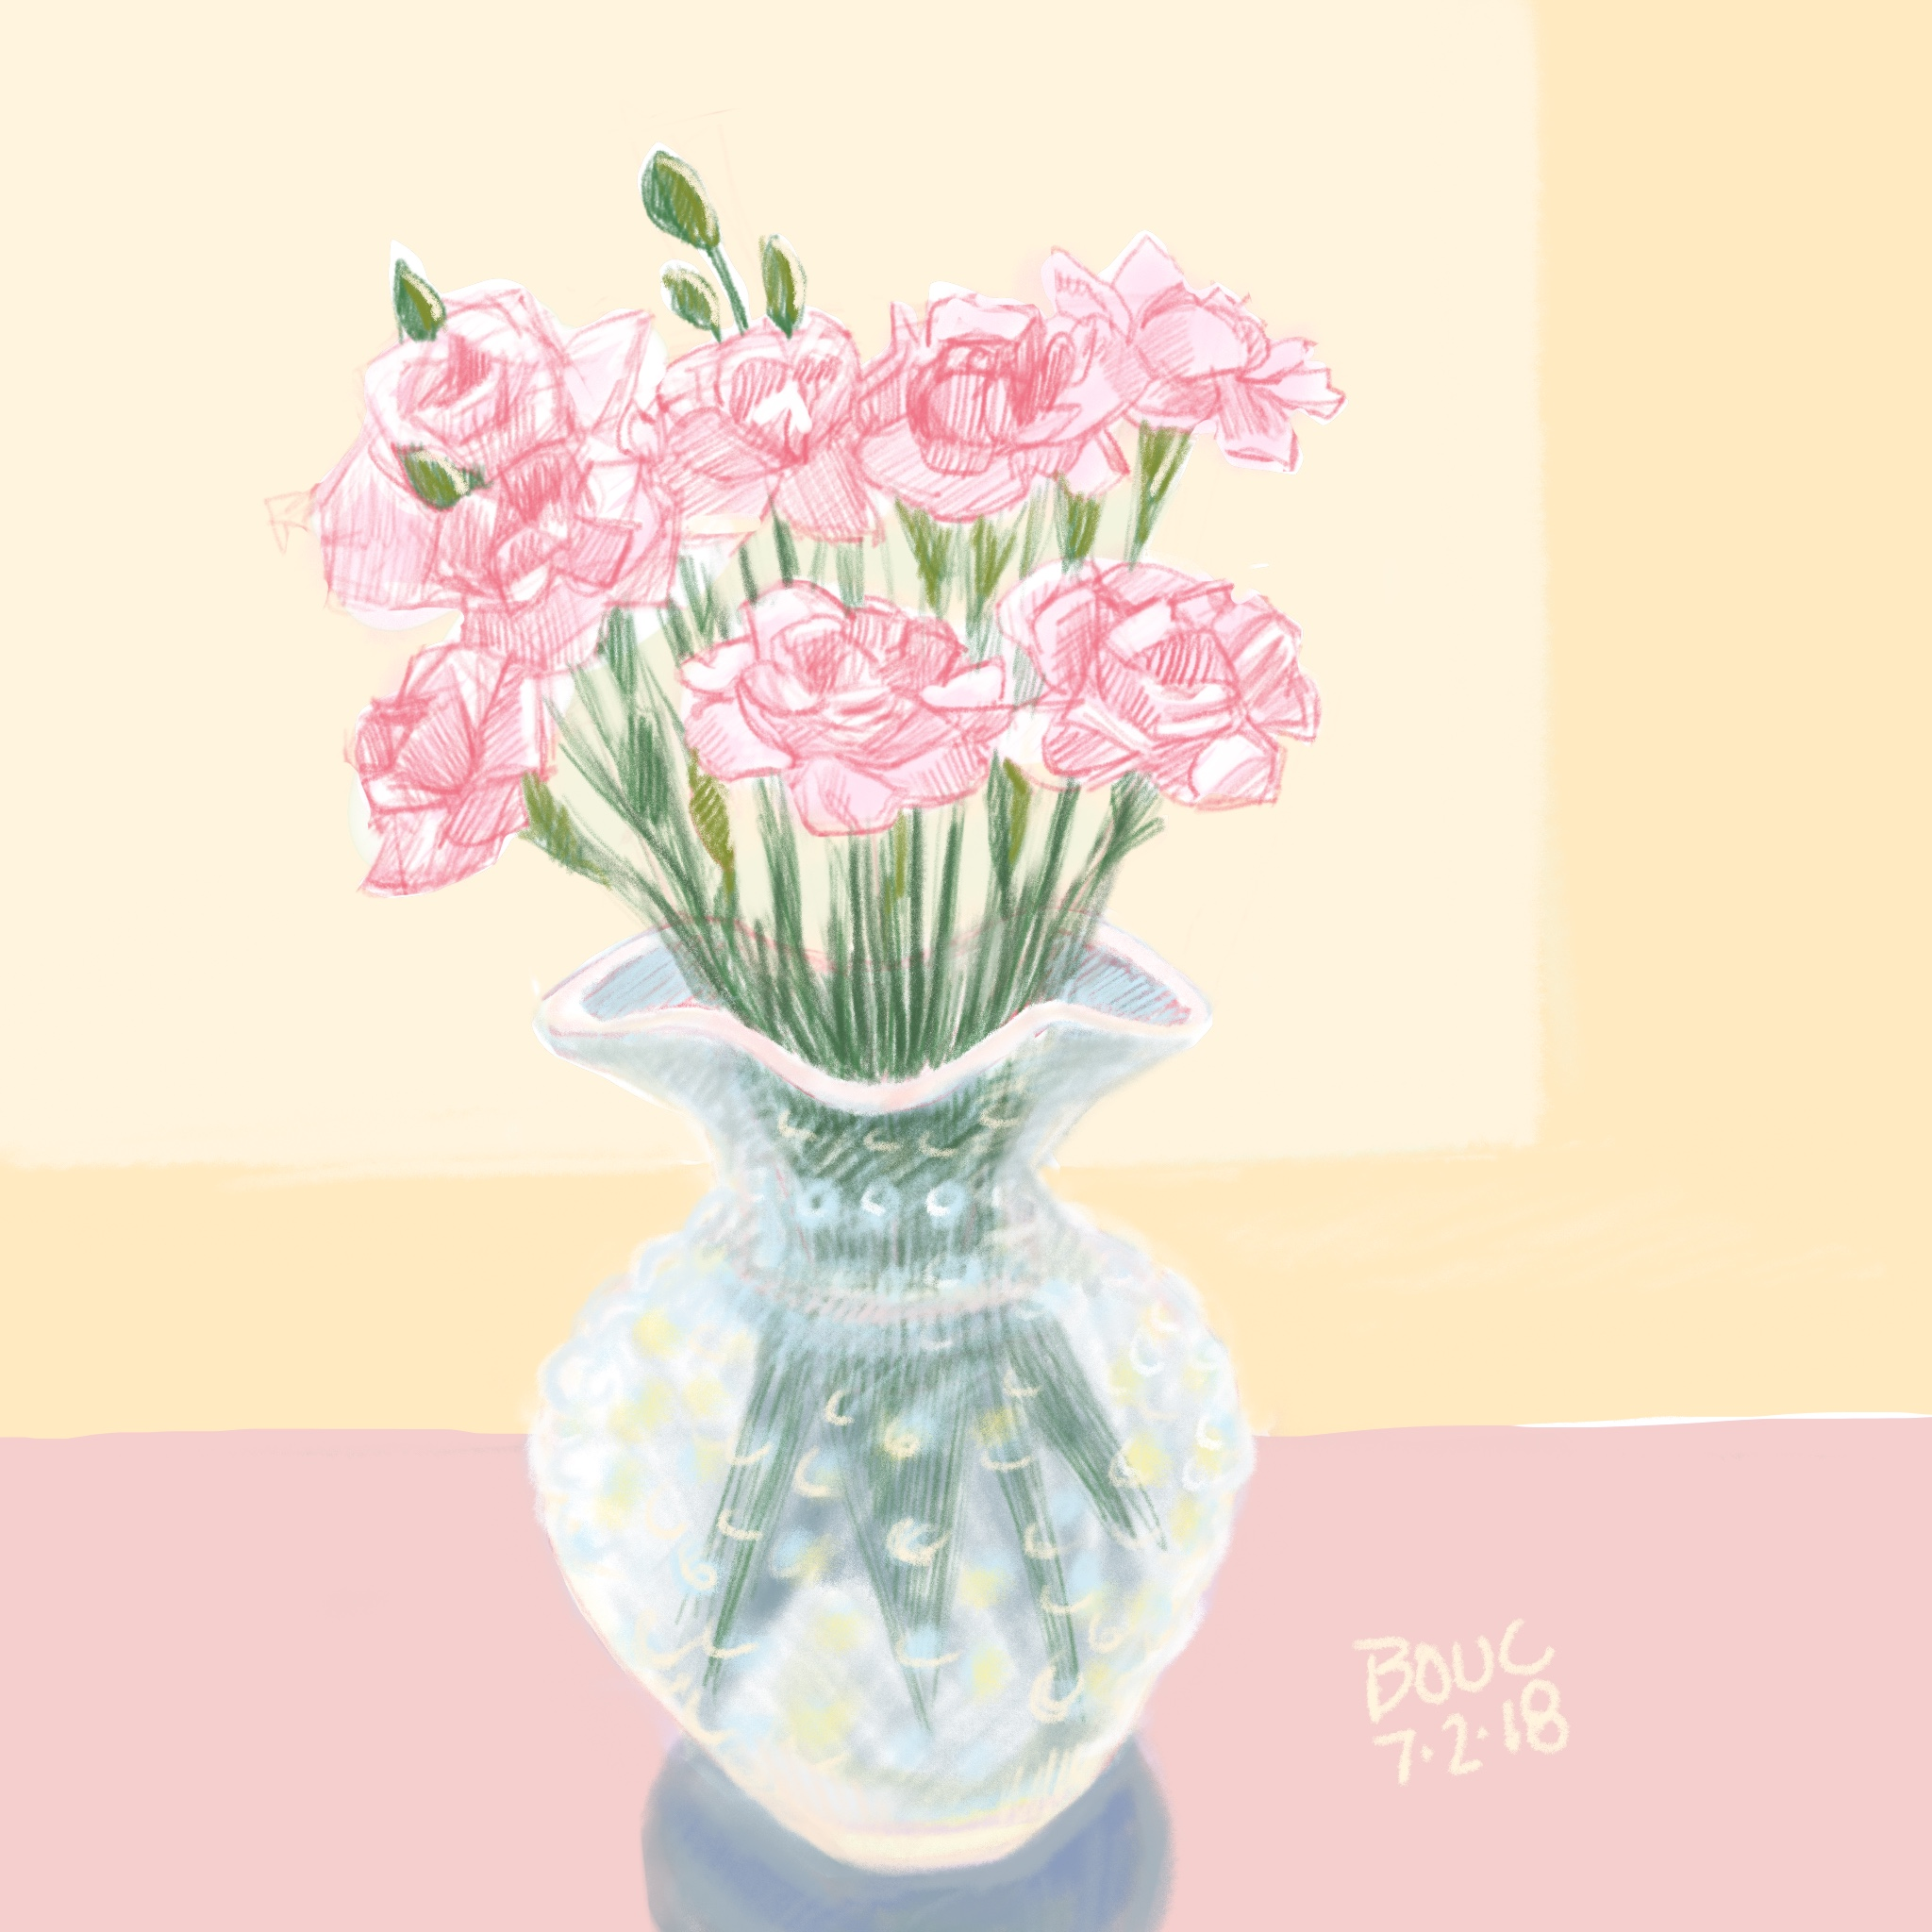 Tired Baby Carnations, Procreate digital sketch